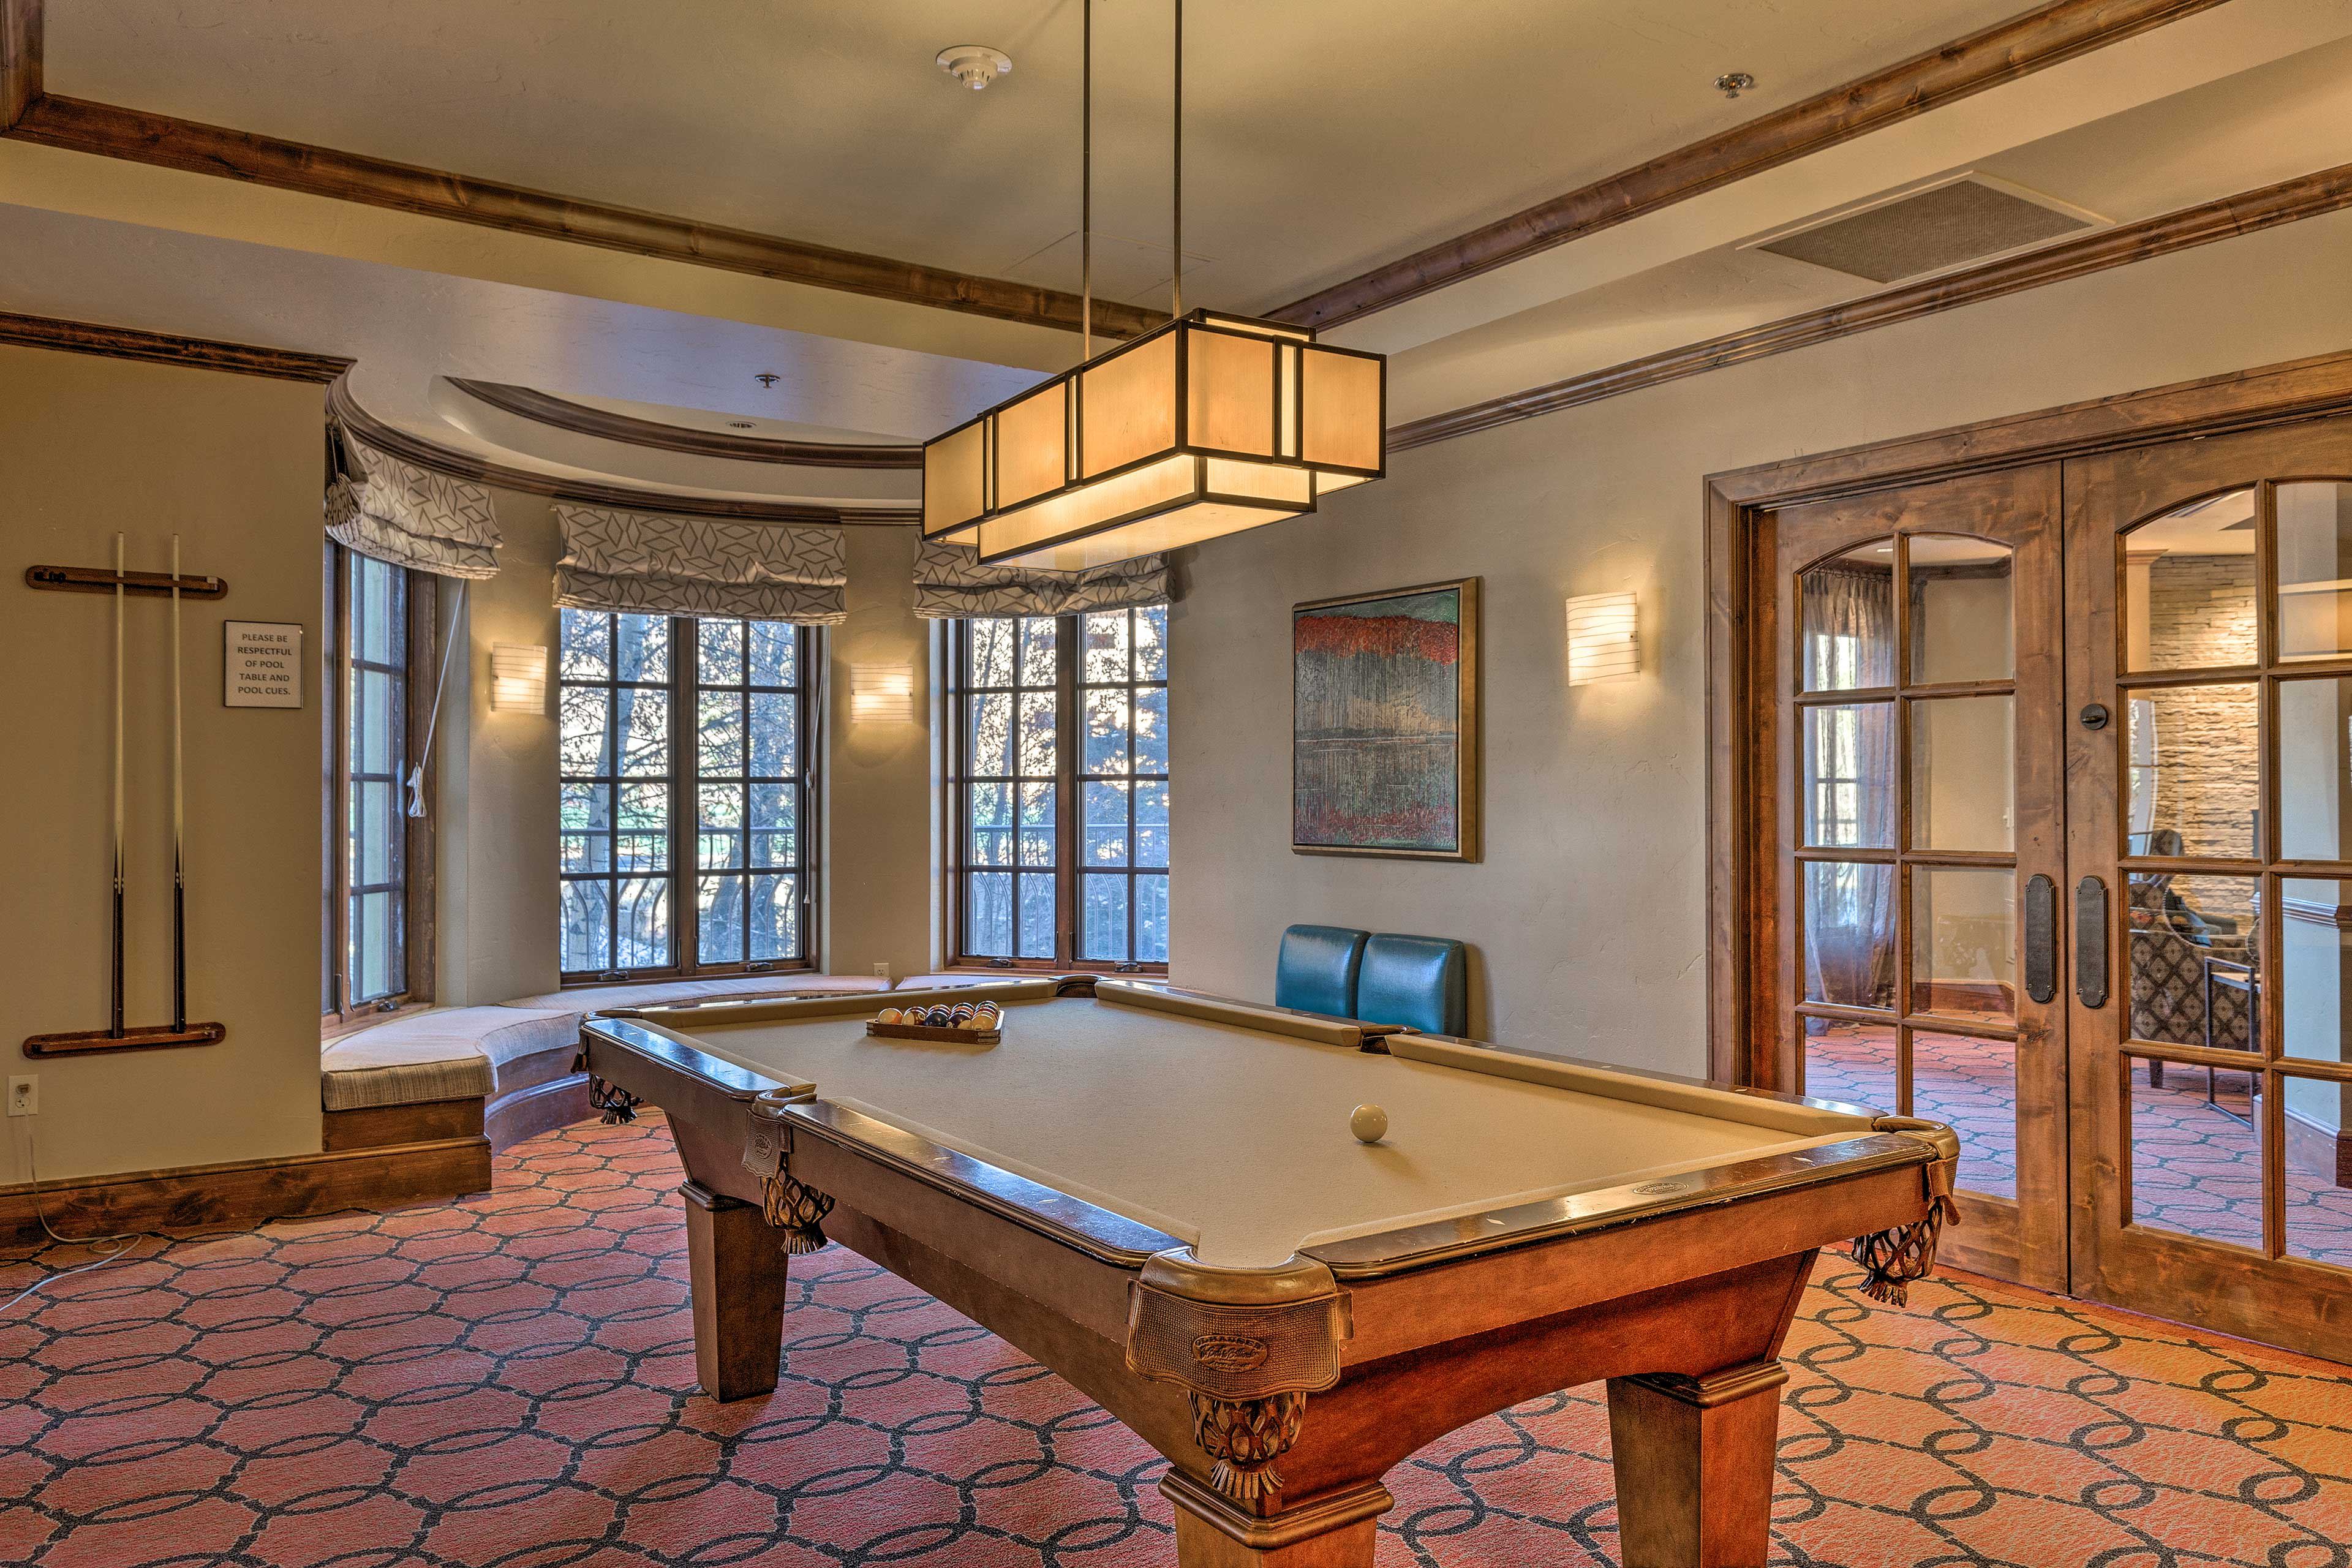 Challenge your fellow travelers to a competitive game of pool!